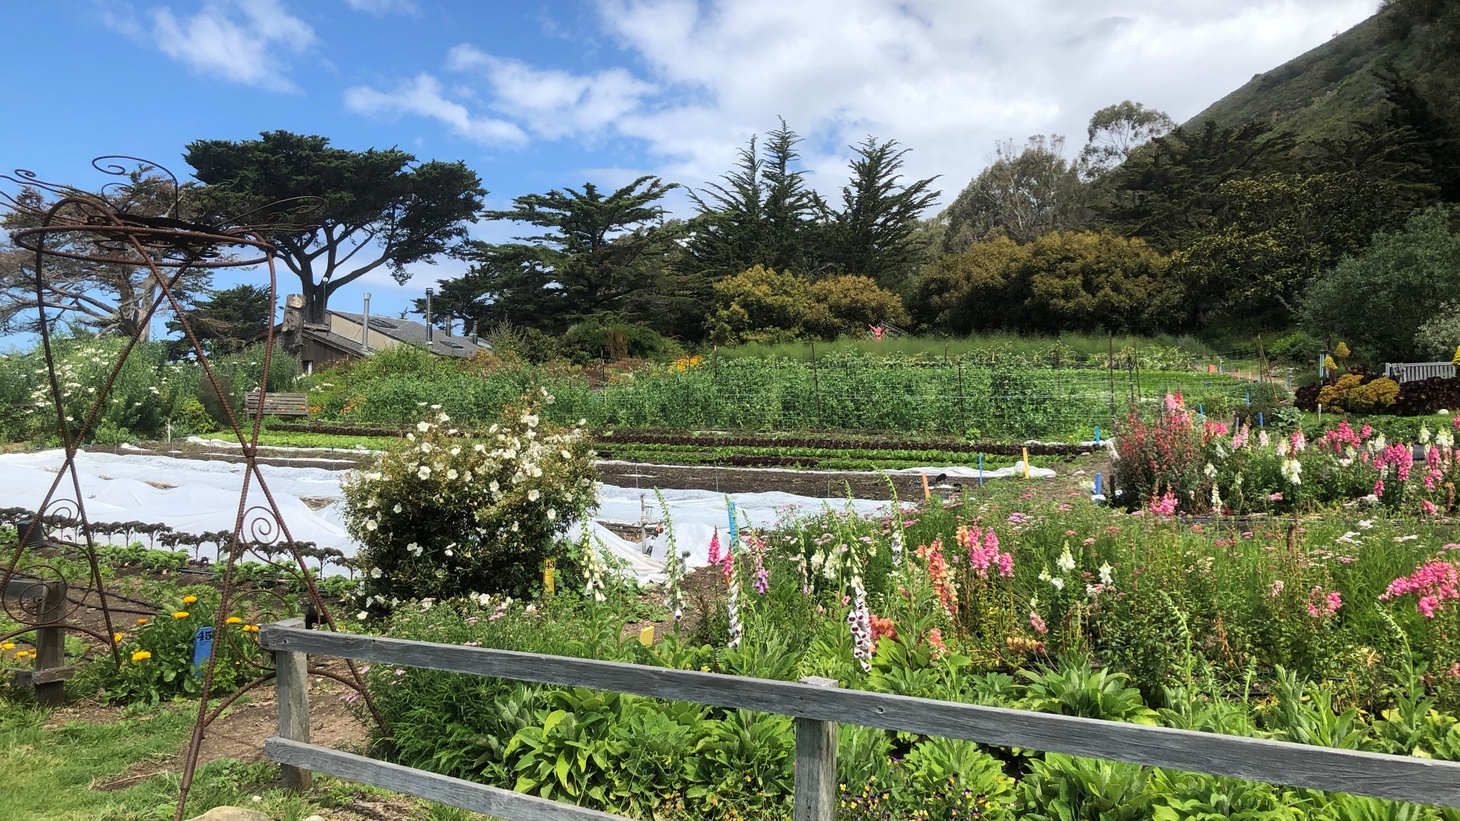 The garden at the Esalen Institute in Big Sur. Esalen CEO Terry Gilbey expects the institute to be completely booked for months, as people yearn for peace following the 2020 election.